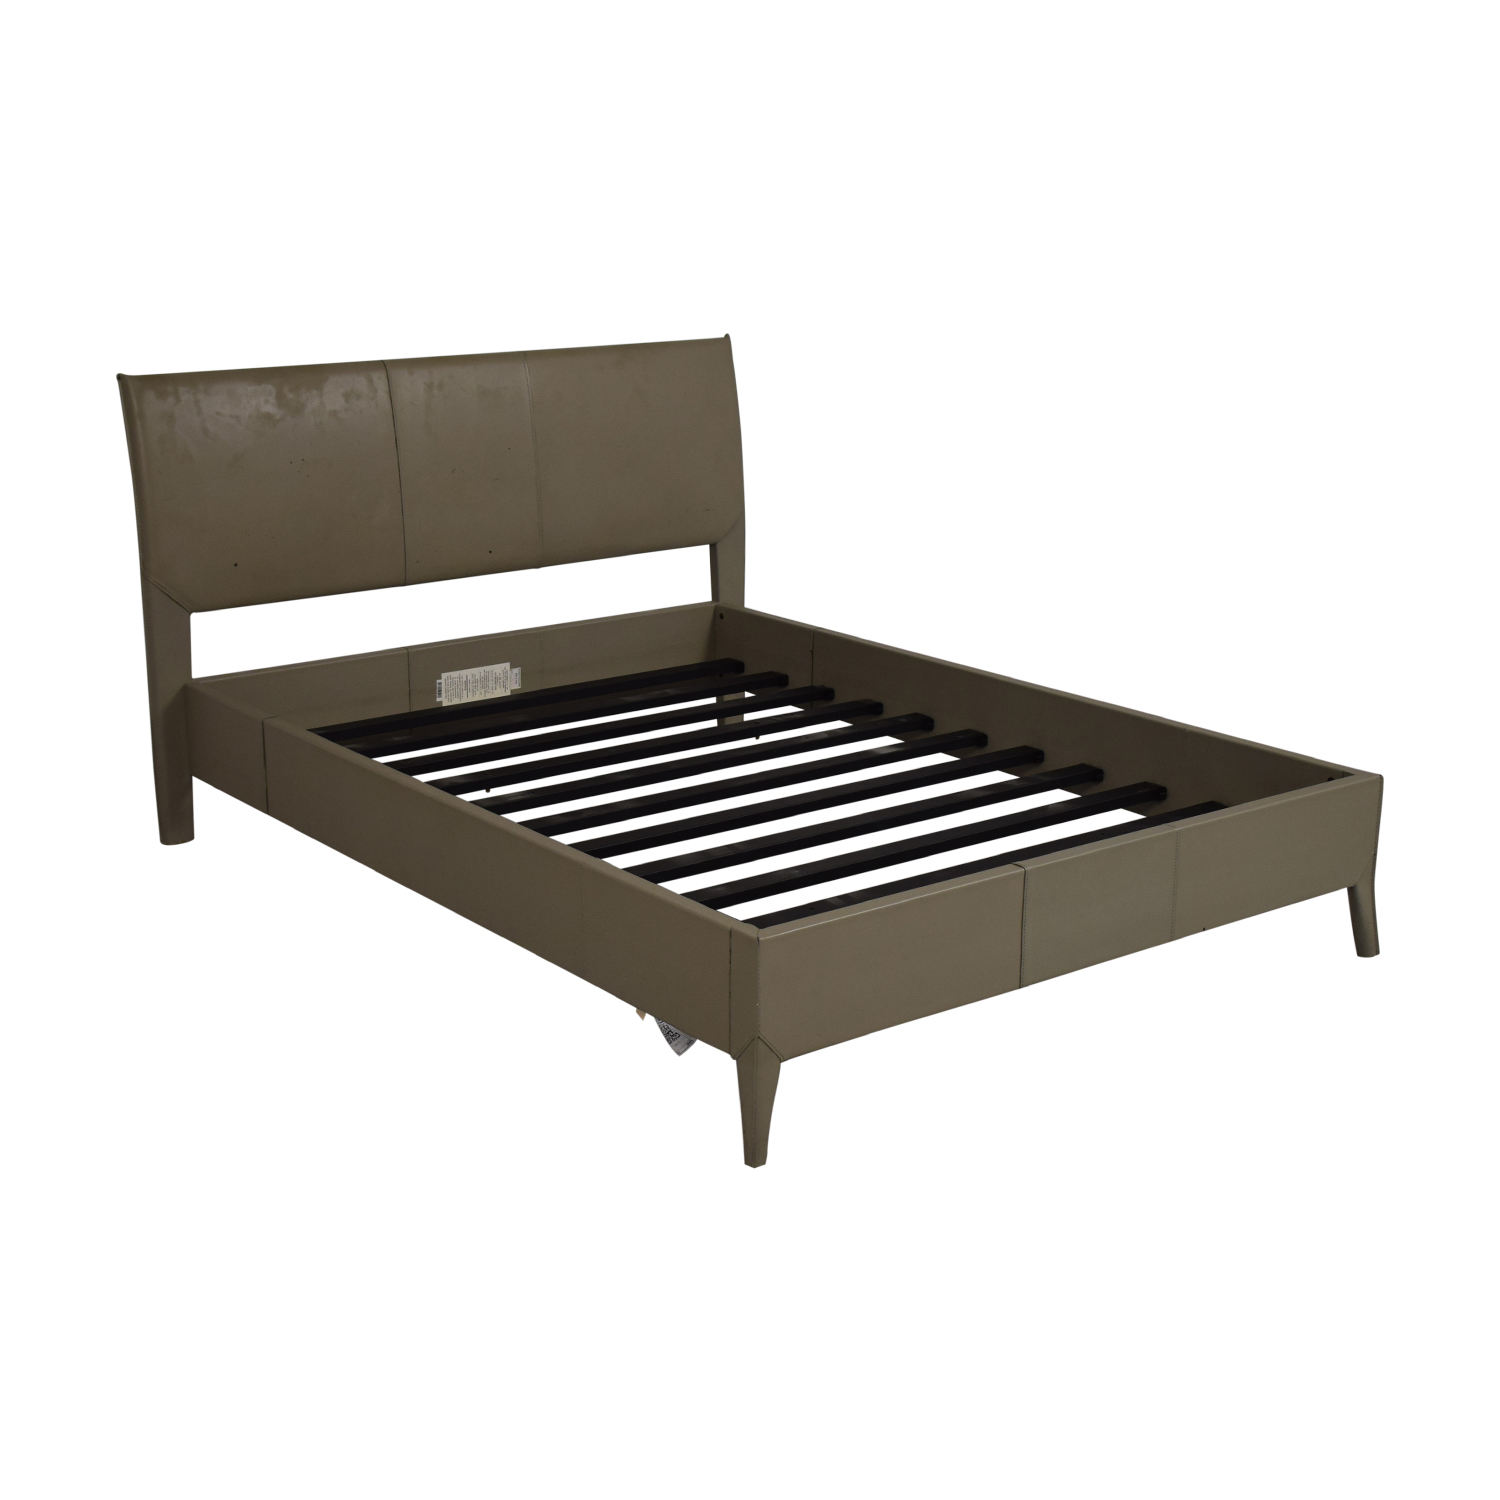 Crate & Barrel Crate & Barrel Grey Full Bed nyc